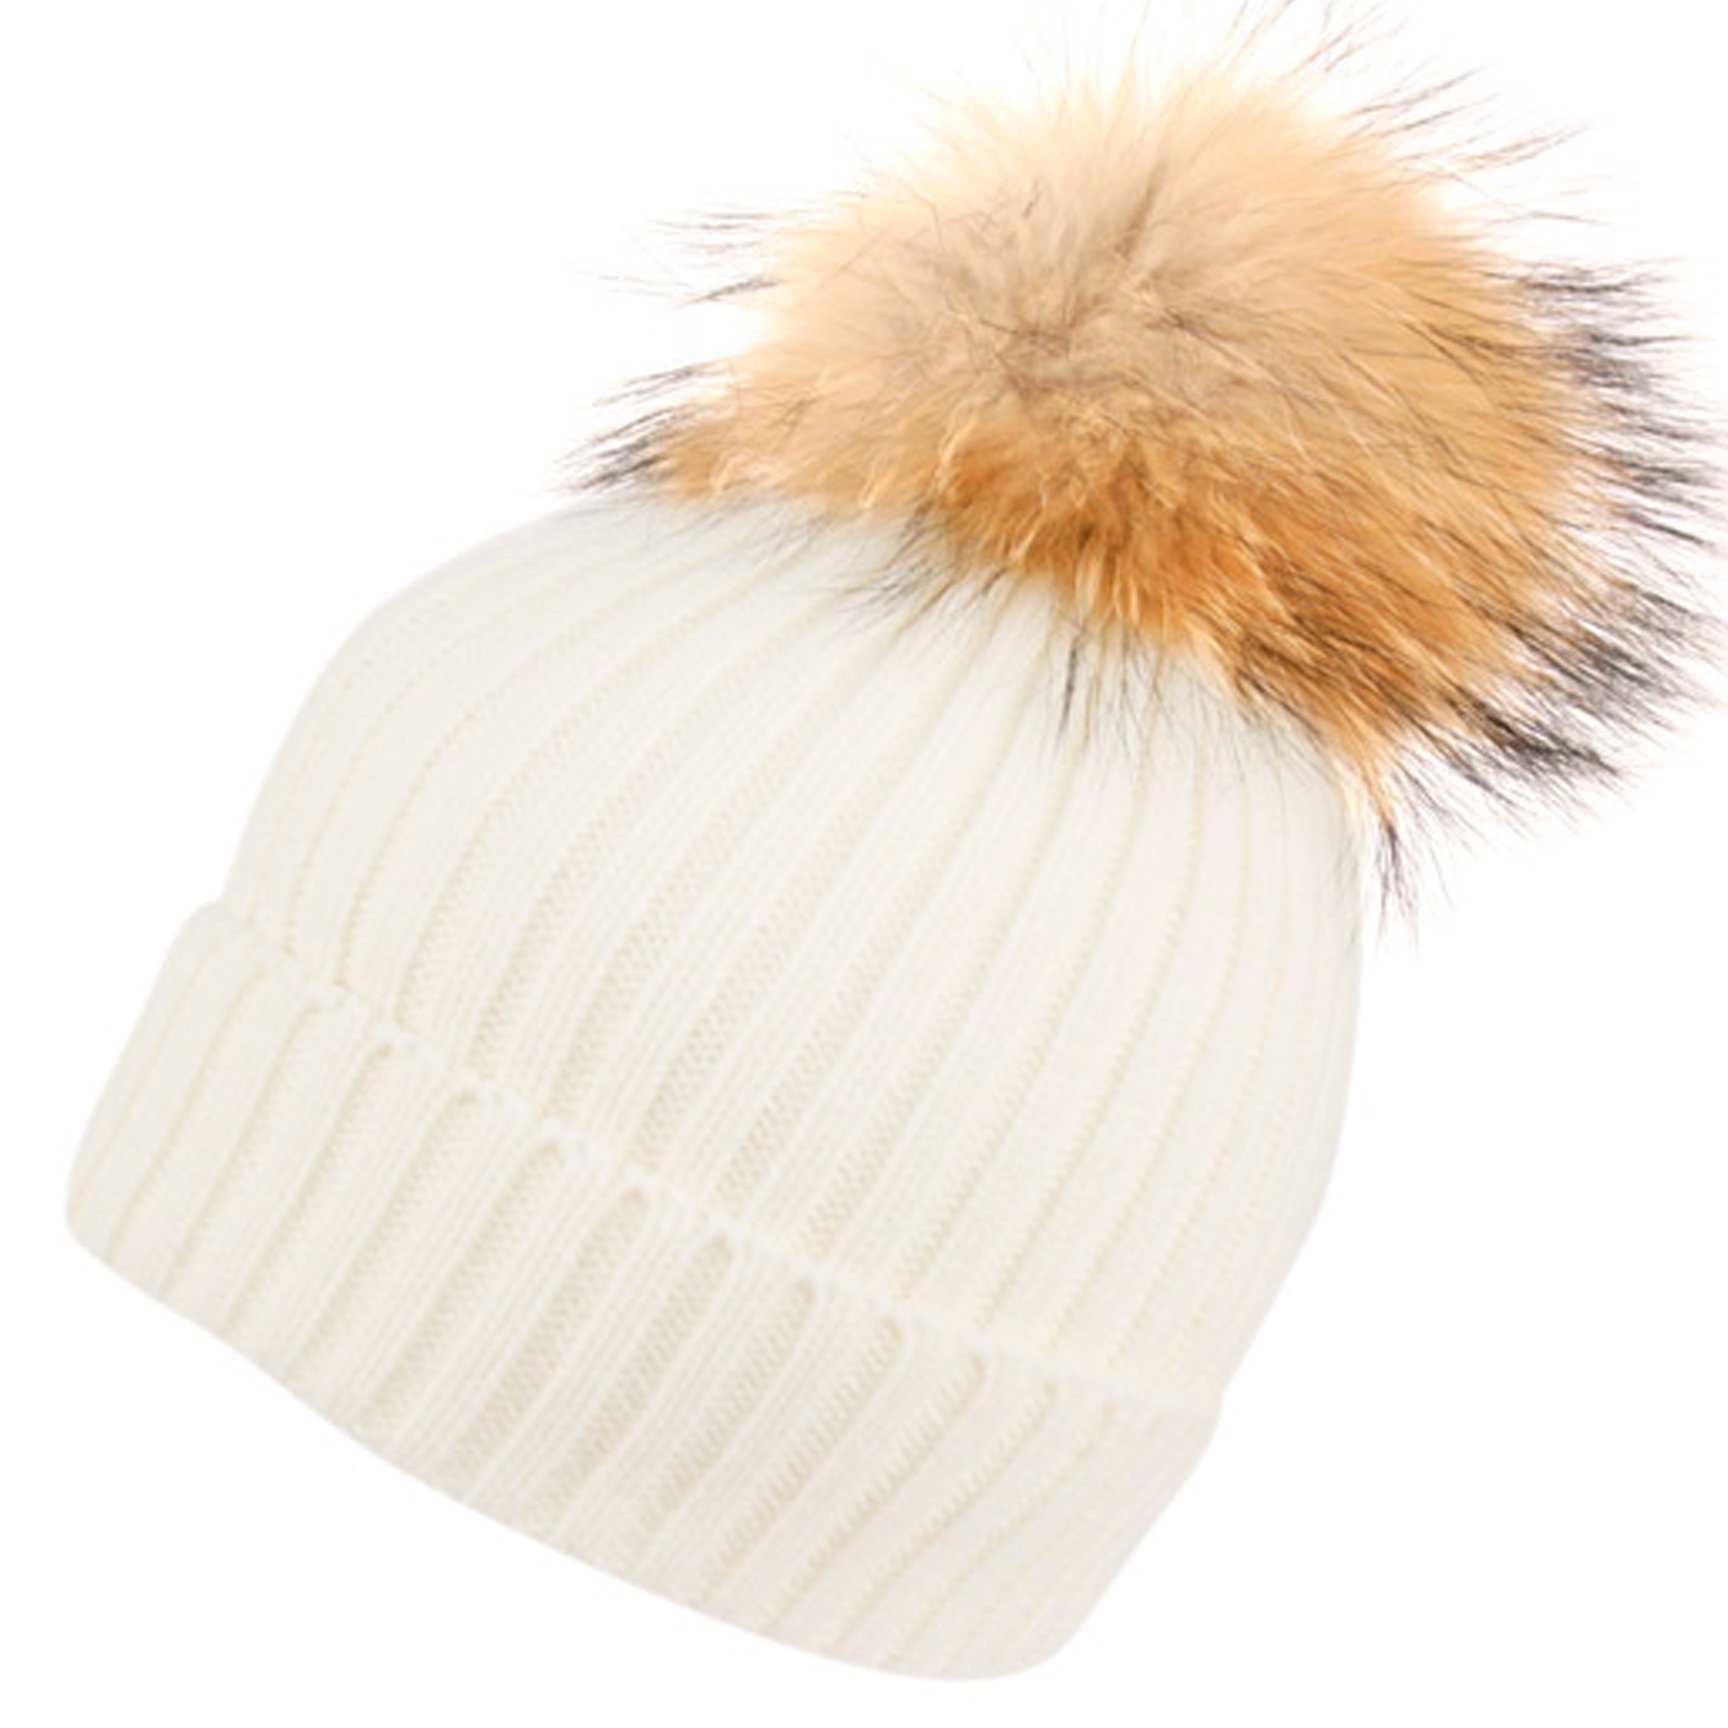 BN2356 Solid Cable Knit Real Raccoon Fur Pom Pom Skull Cap Hat Beanie (WHITE)